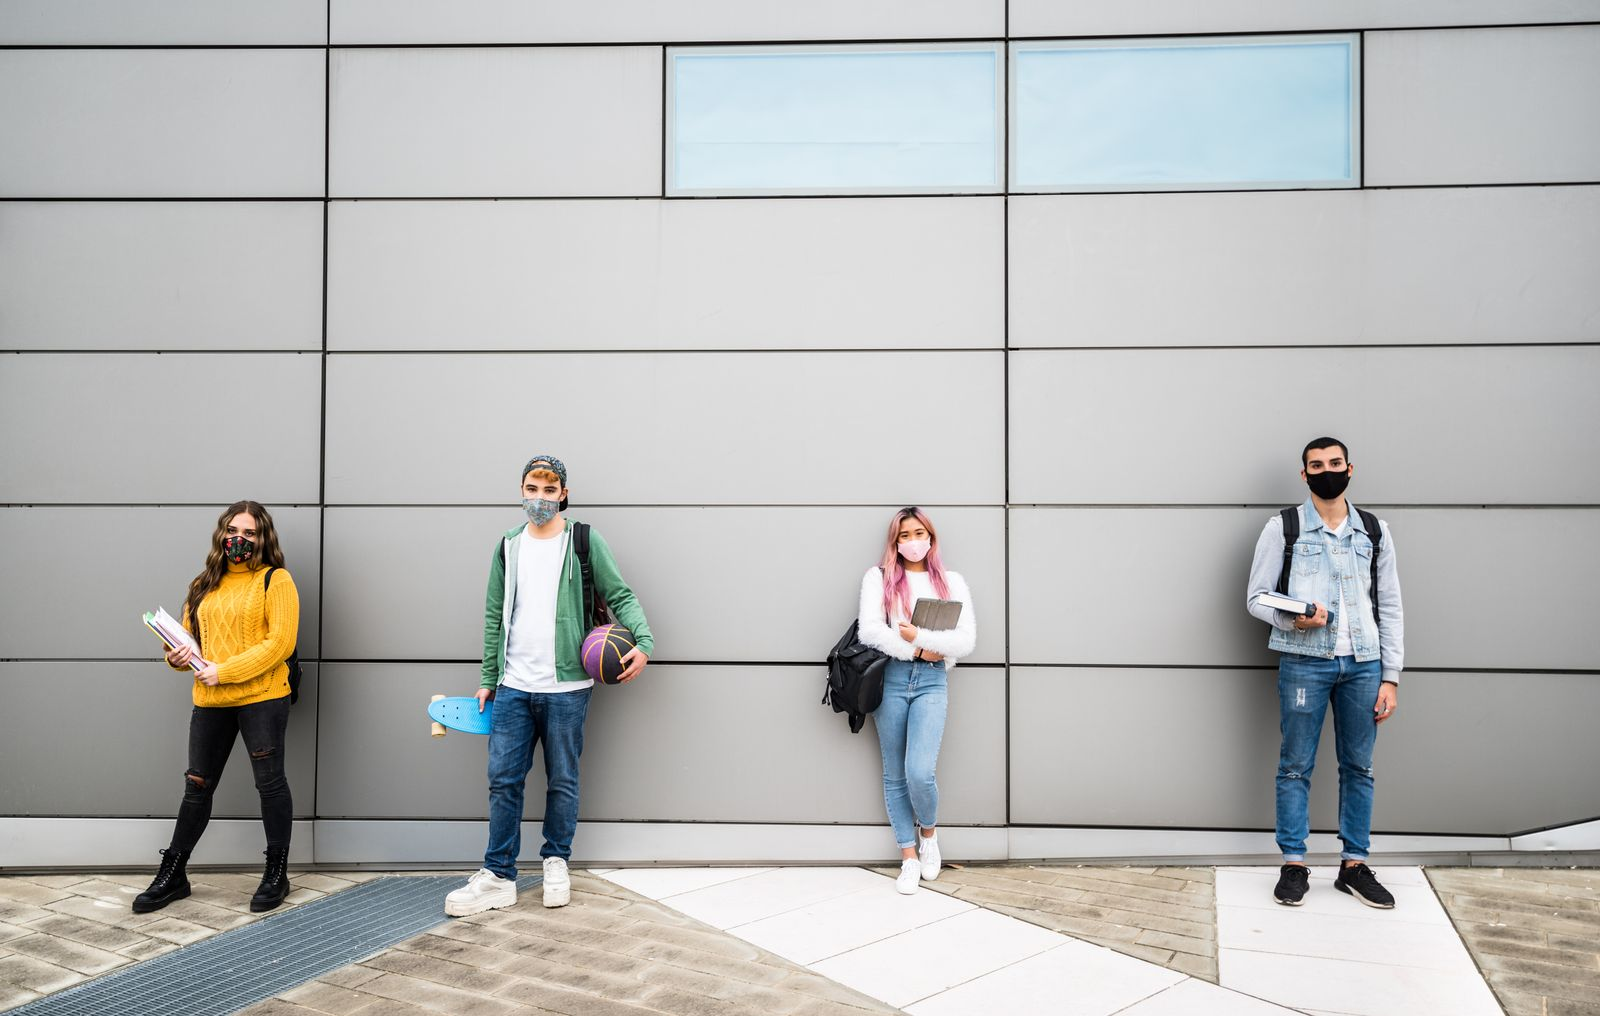 Young students with face mask in casual clothes standing in front of a grey wall background - New normal concept with people going to school